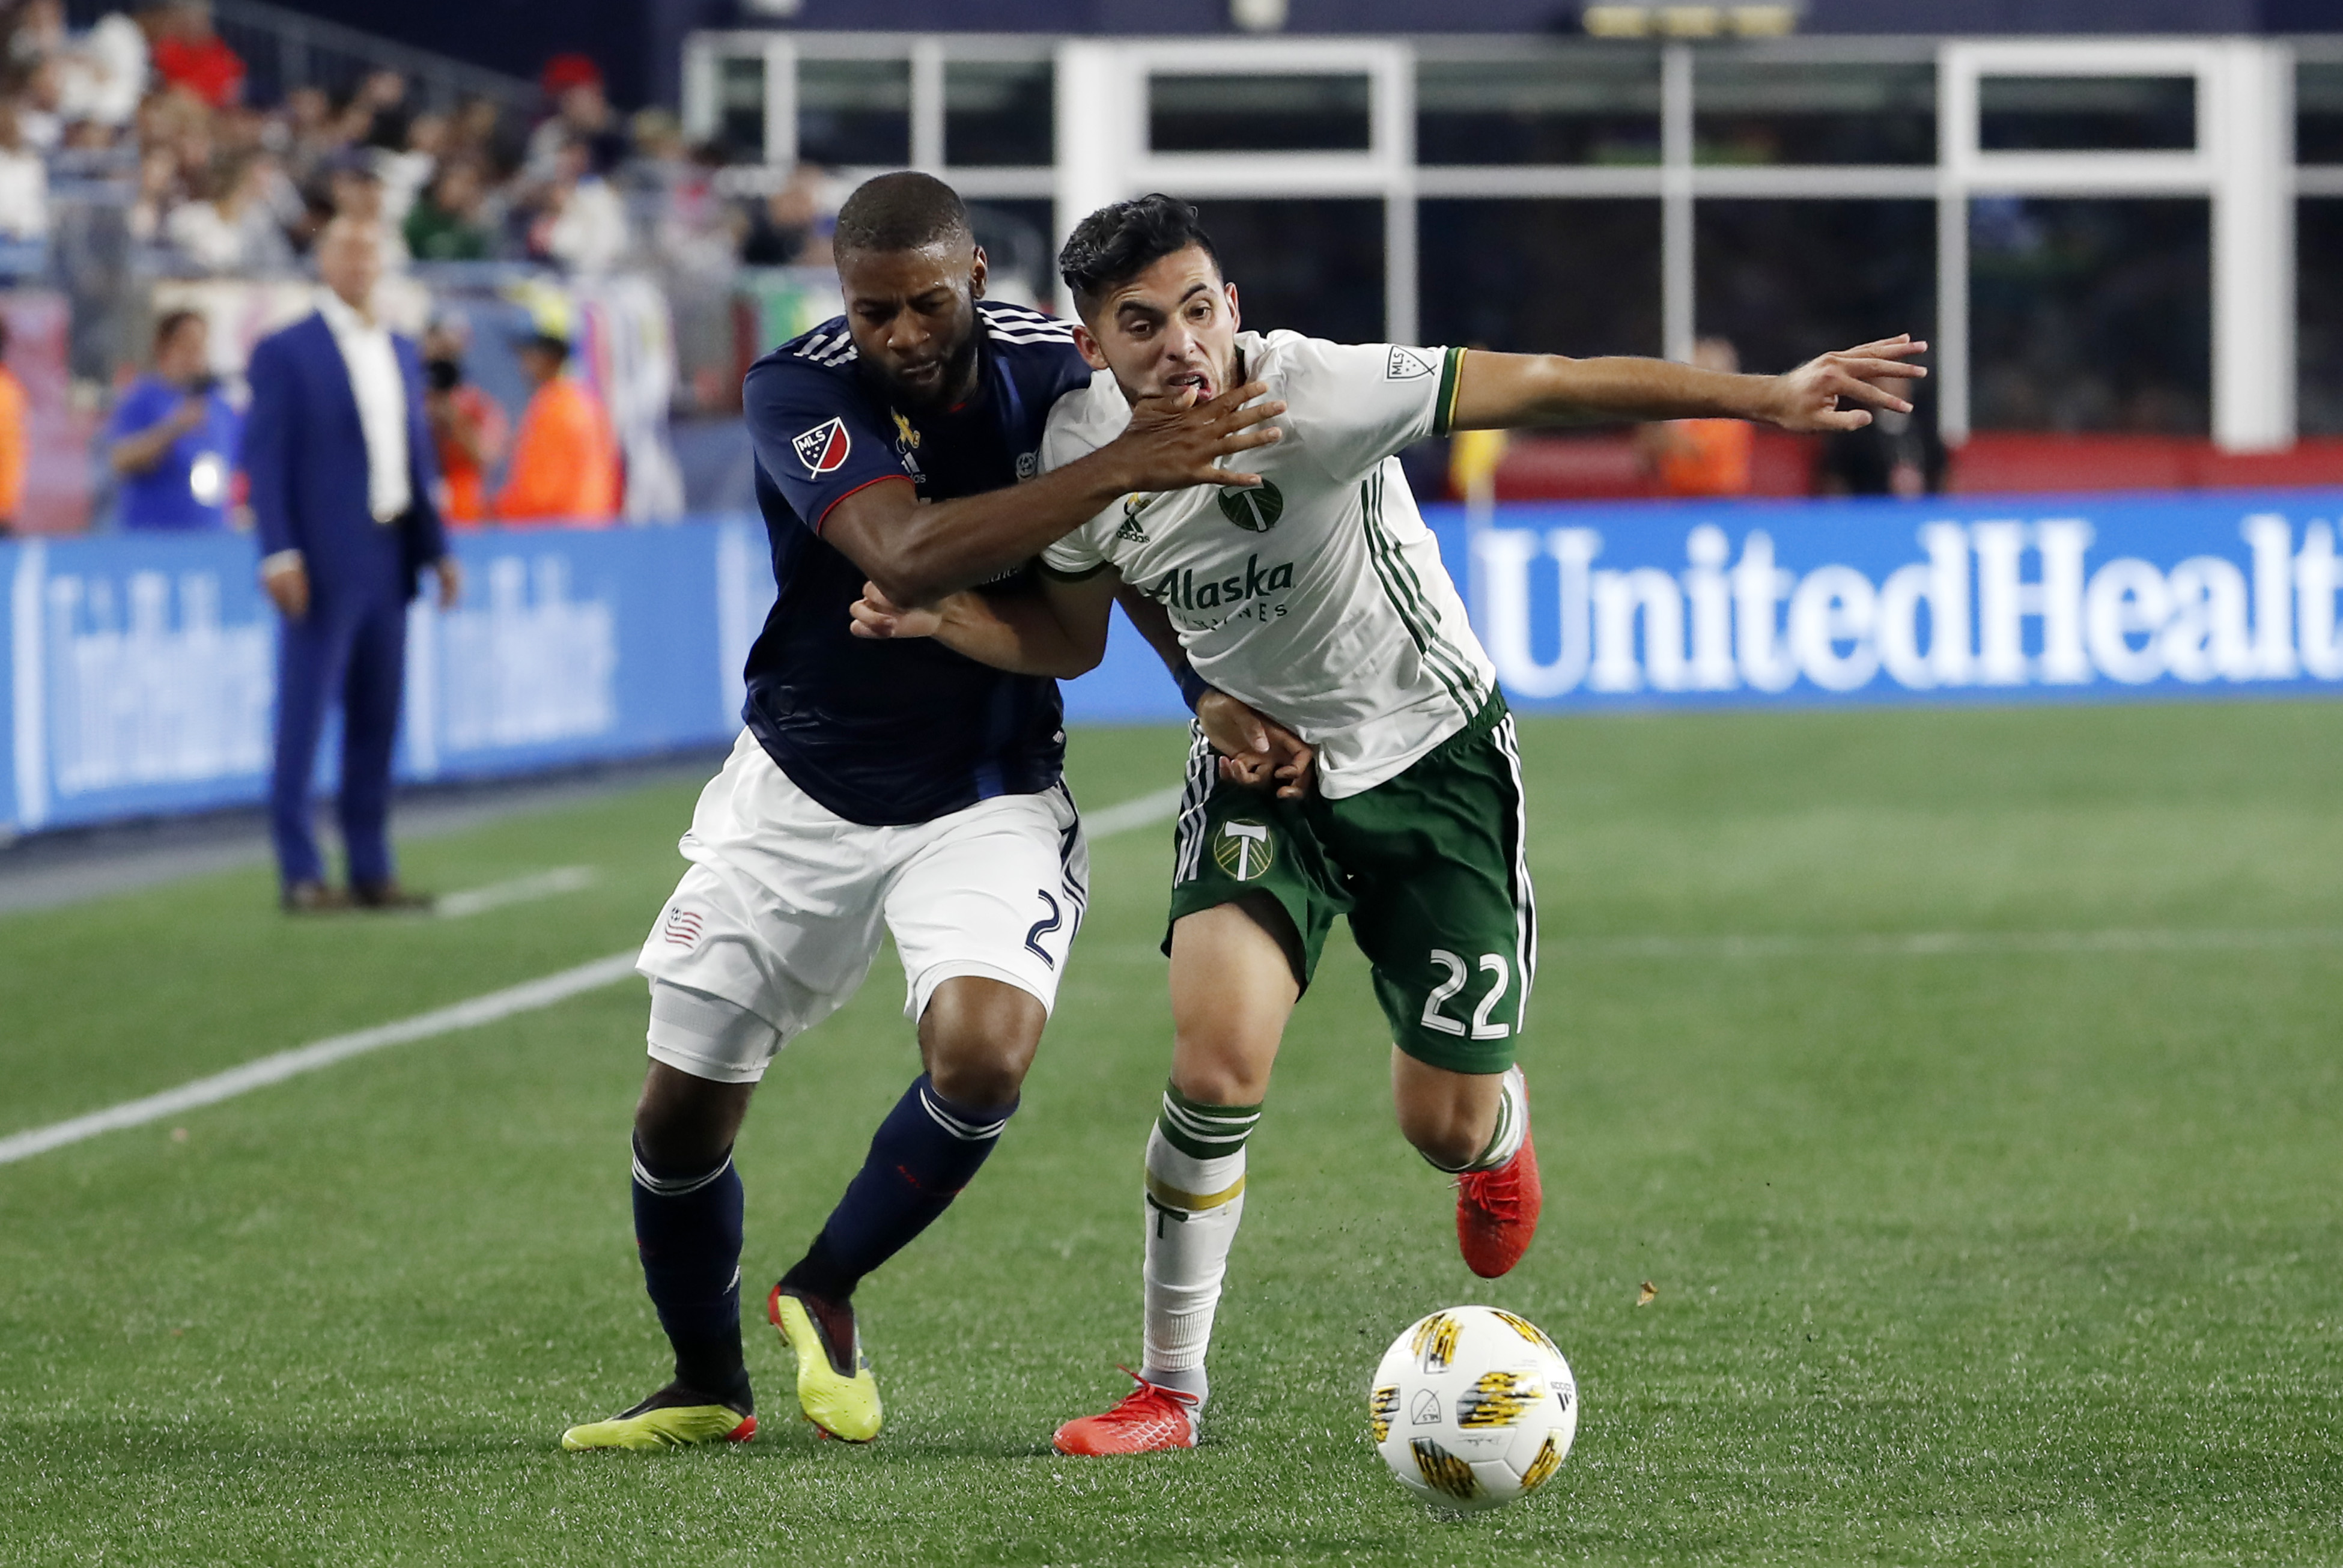 SOCCER: SEP 01 MLS - Portland Timbers at New England Revolution